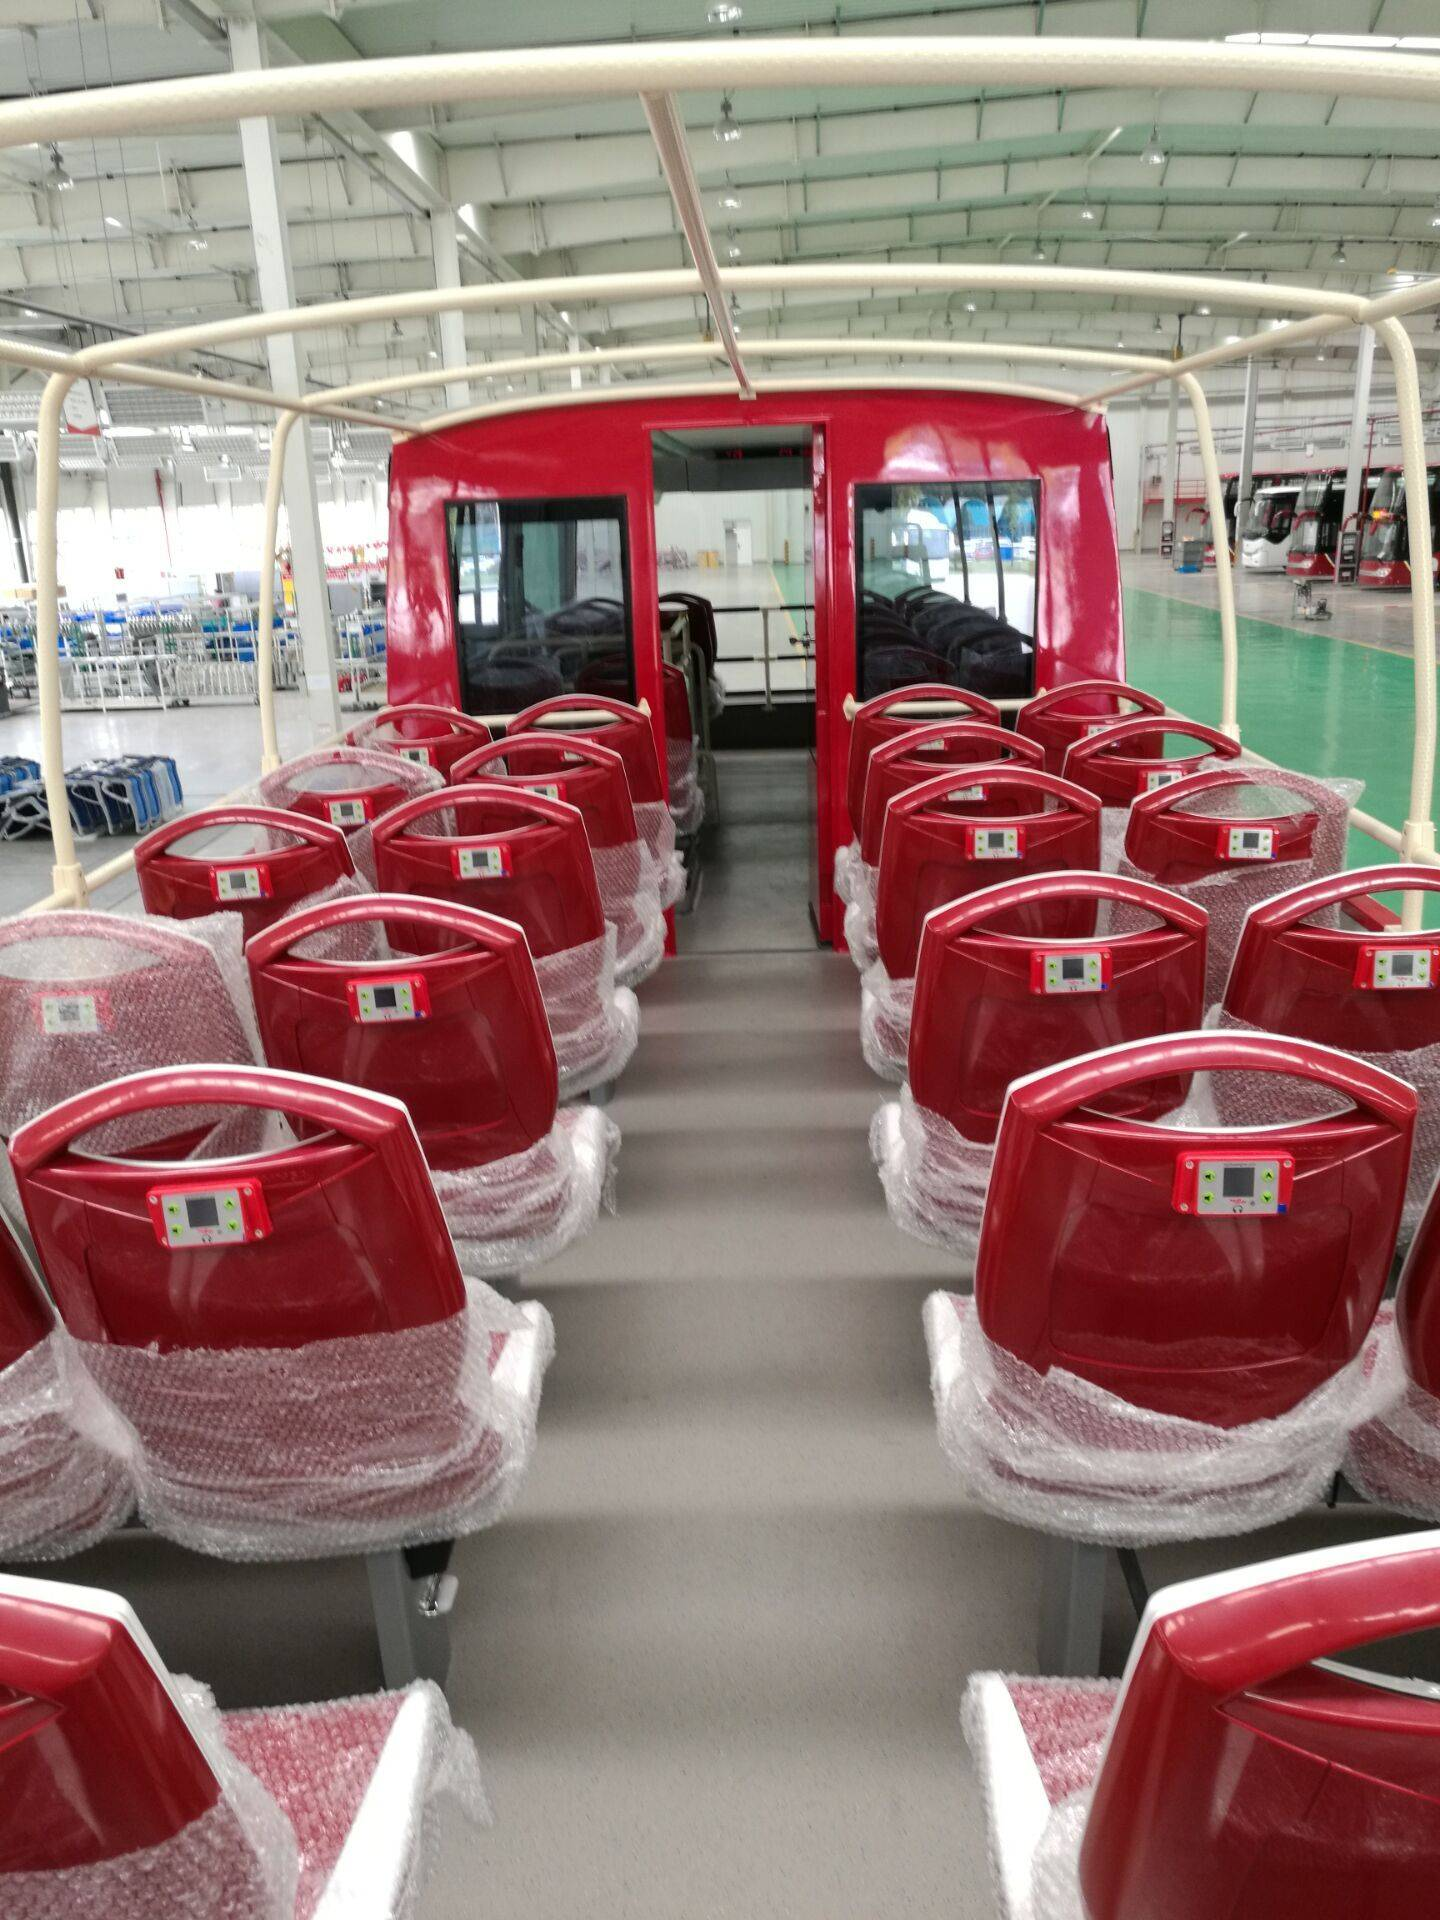 city sightseeing multilingual tour commentary